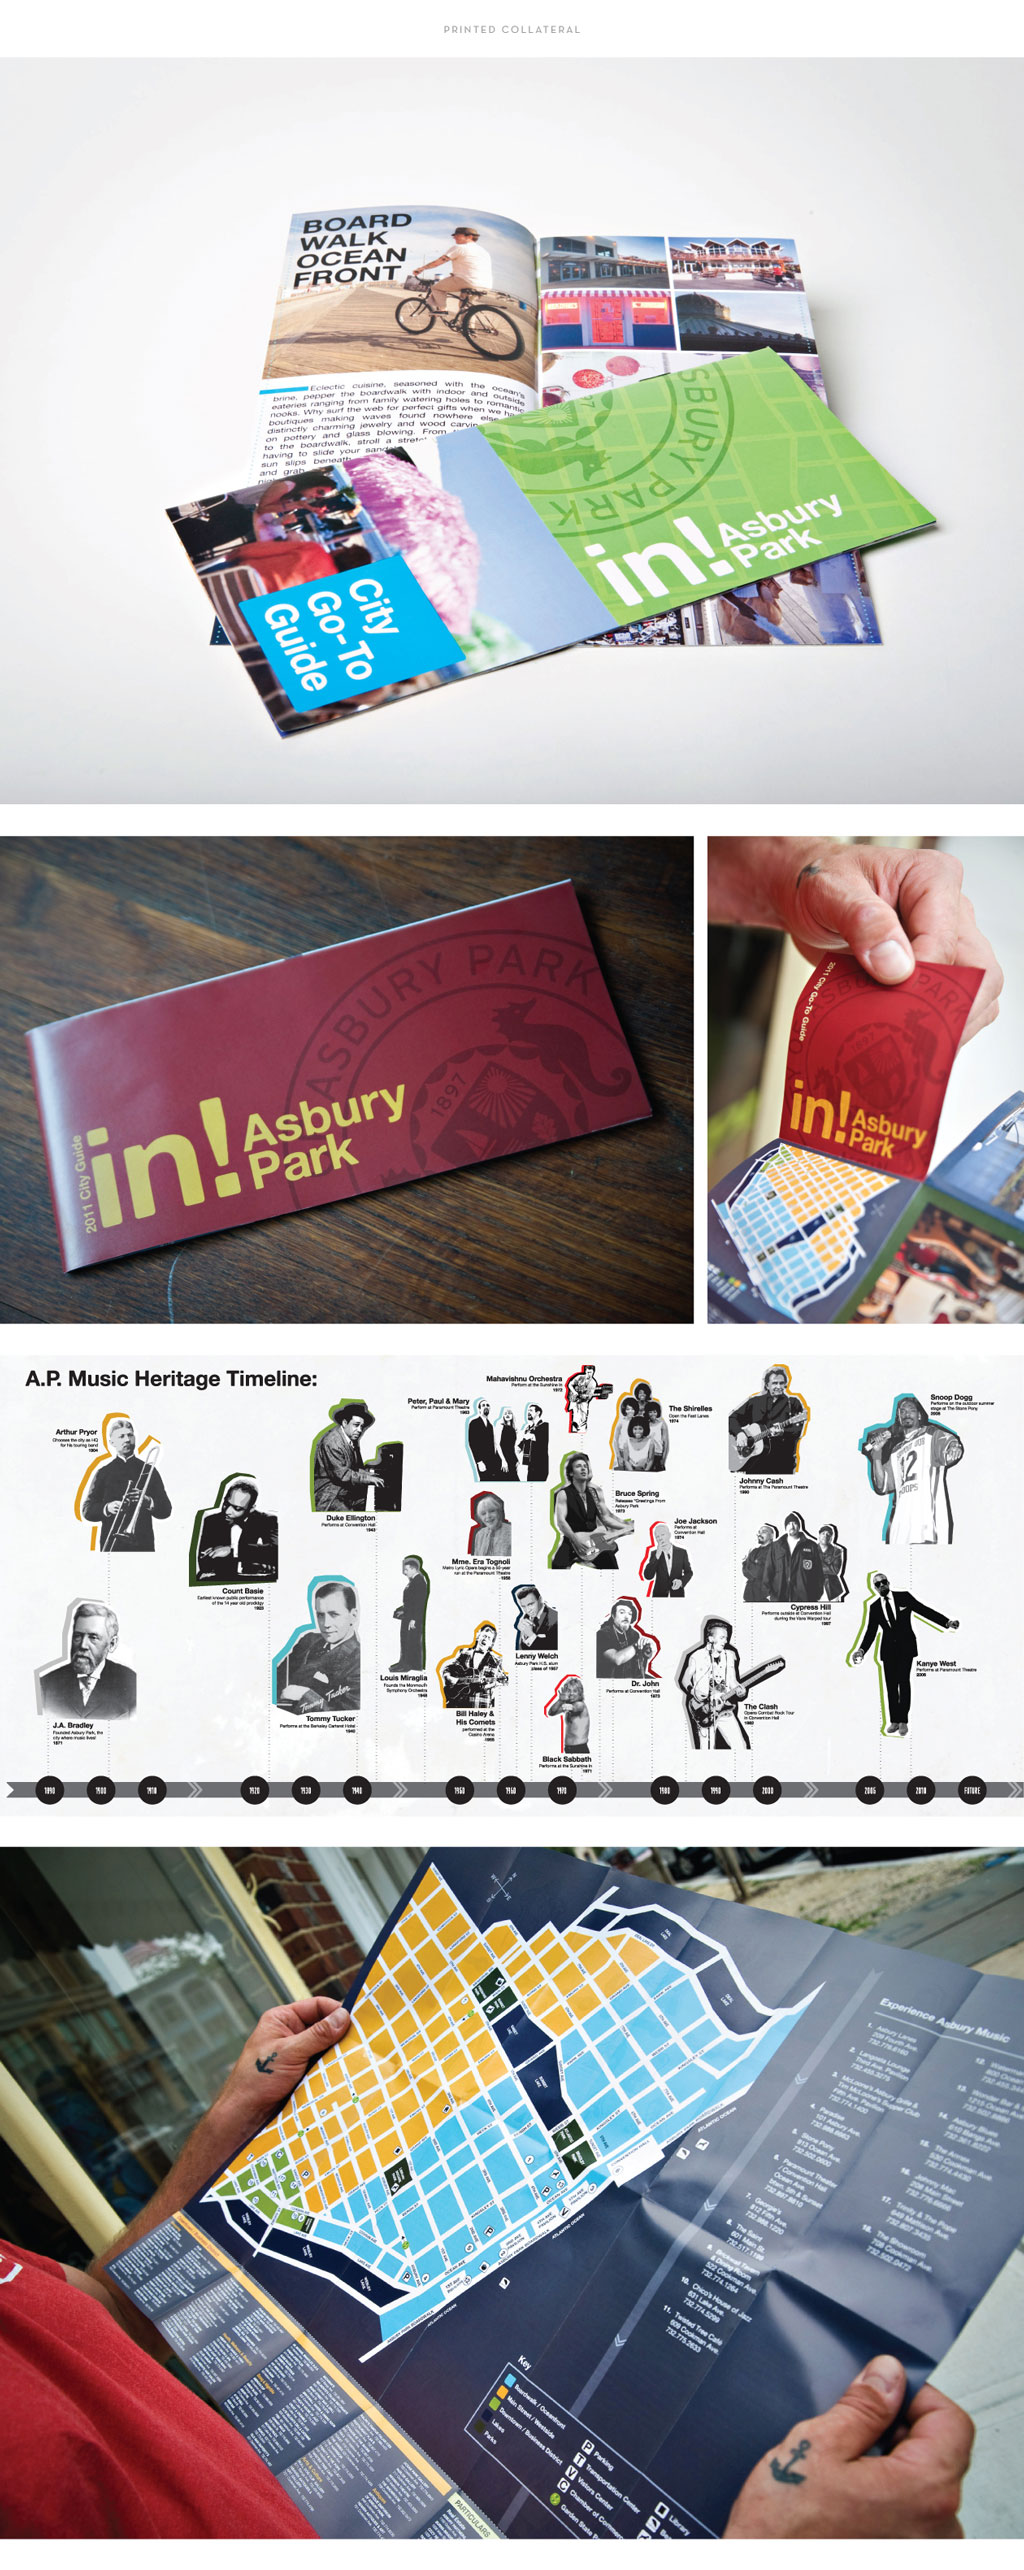 City of Asbury Park brochure and map design by M studio